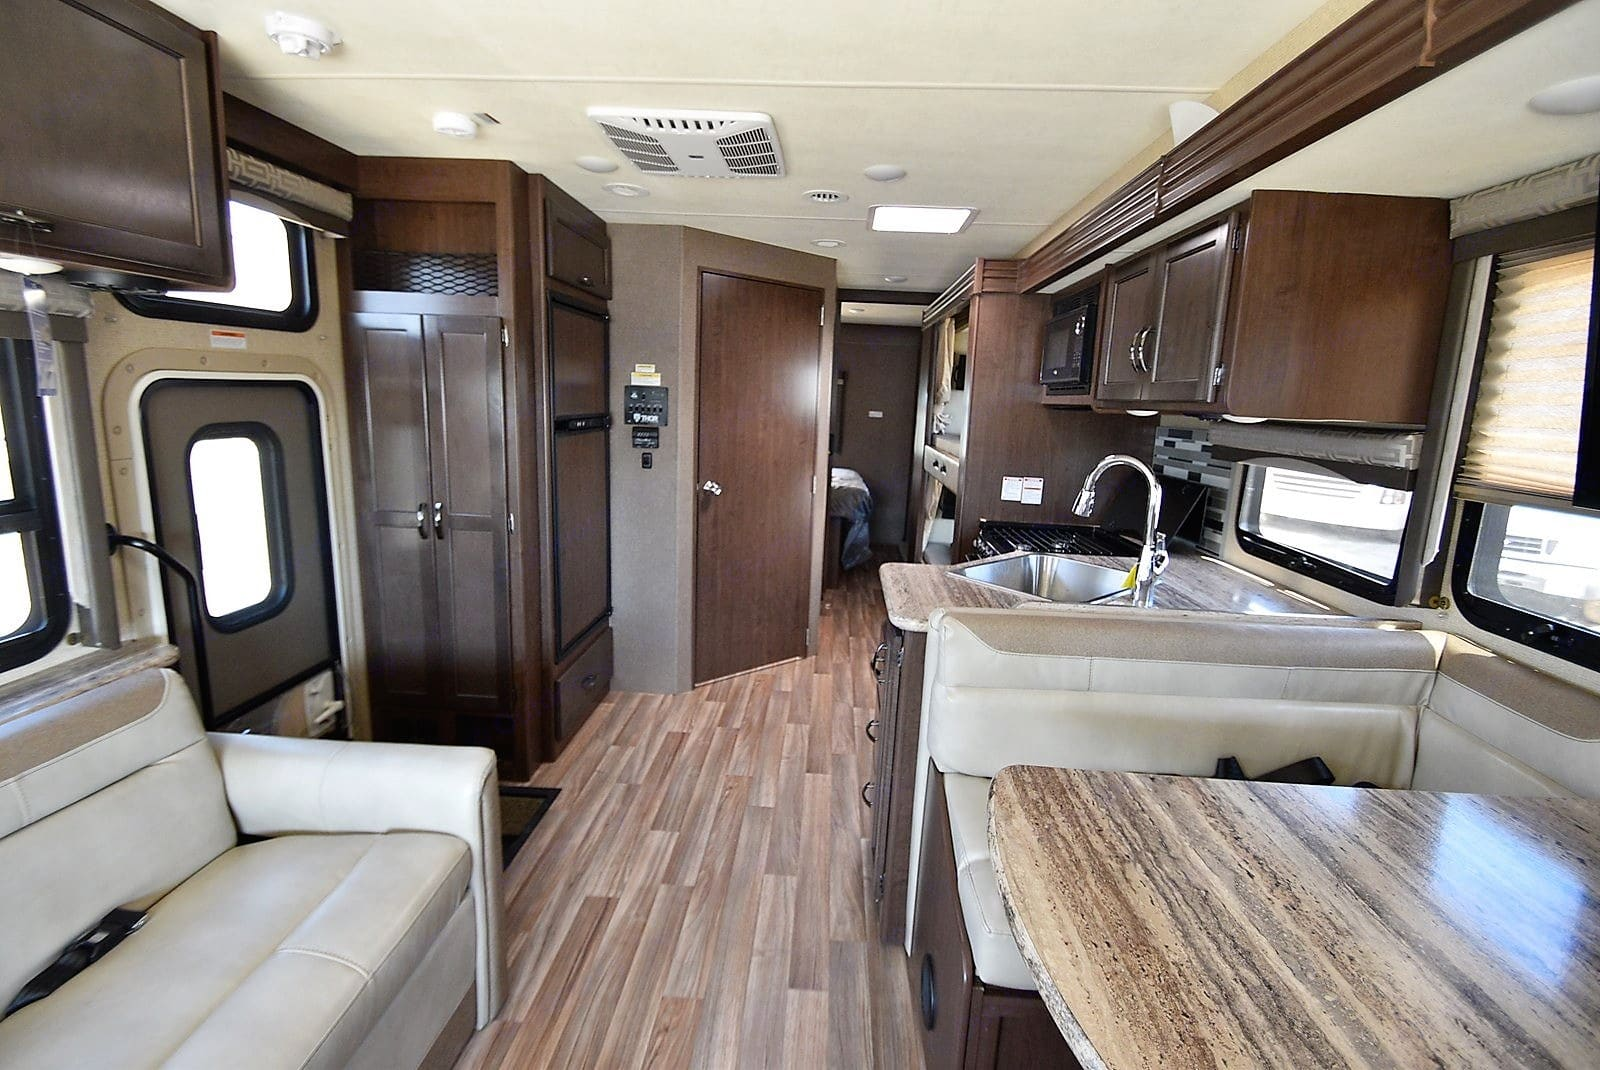 Rearward view of the interior.  Full 7 feet of interior height.  Refrigerator/freezer on the left, Control Center panel on wall, bathroom door, and bunks on the right.  Master bedroom further back down the hallway.  Onboard generator is controlled via the Control Center panel.  2 rooftop air conditioners, 1 in ceiling near kitchen, 1 in ceiling in master bedroom (50-amp service required to use both at same time, otherwise 30-amp service is fine).. Thor Motor Coach A.C.E 30.2 2019